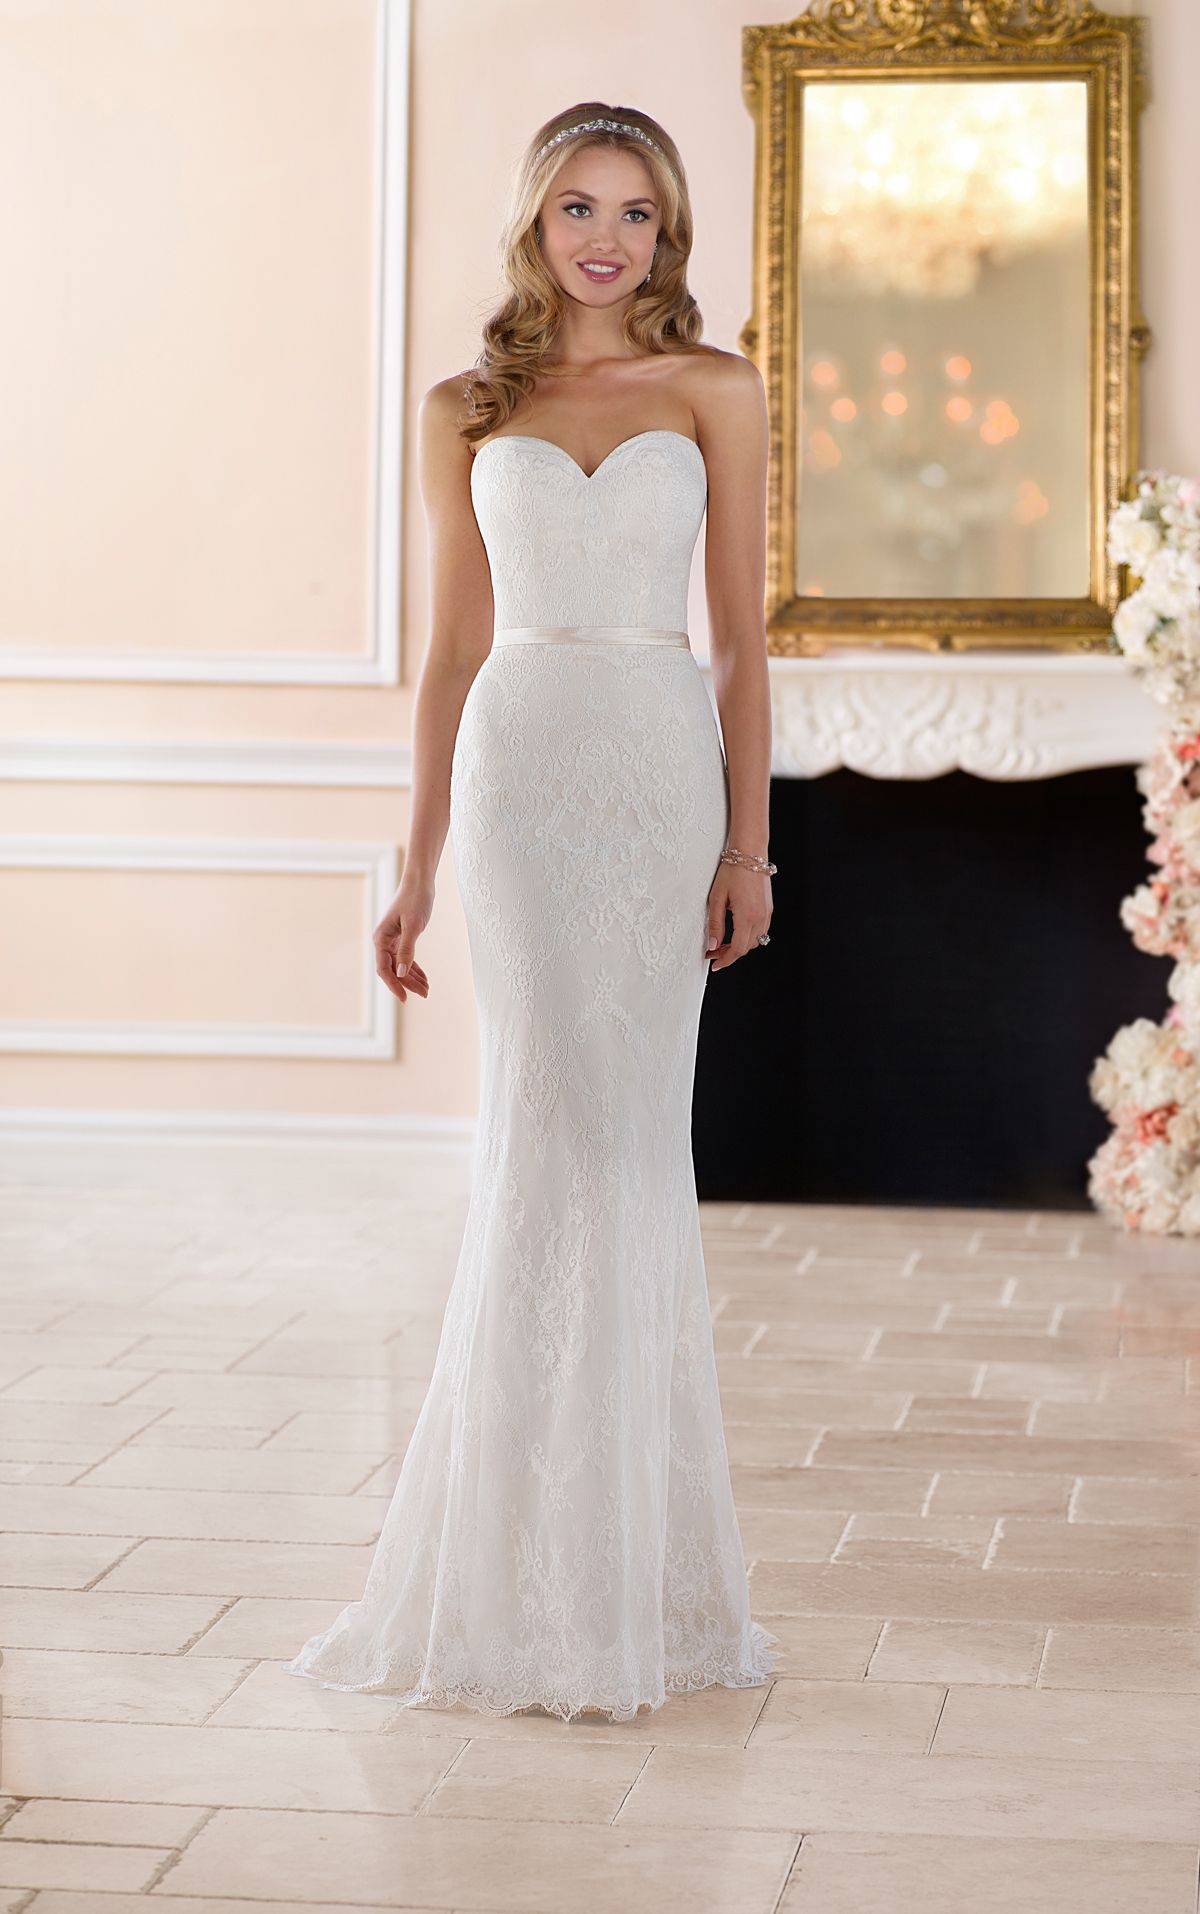 Classic Wedding Dress Silhouette: The Sheath